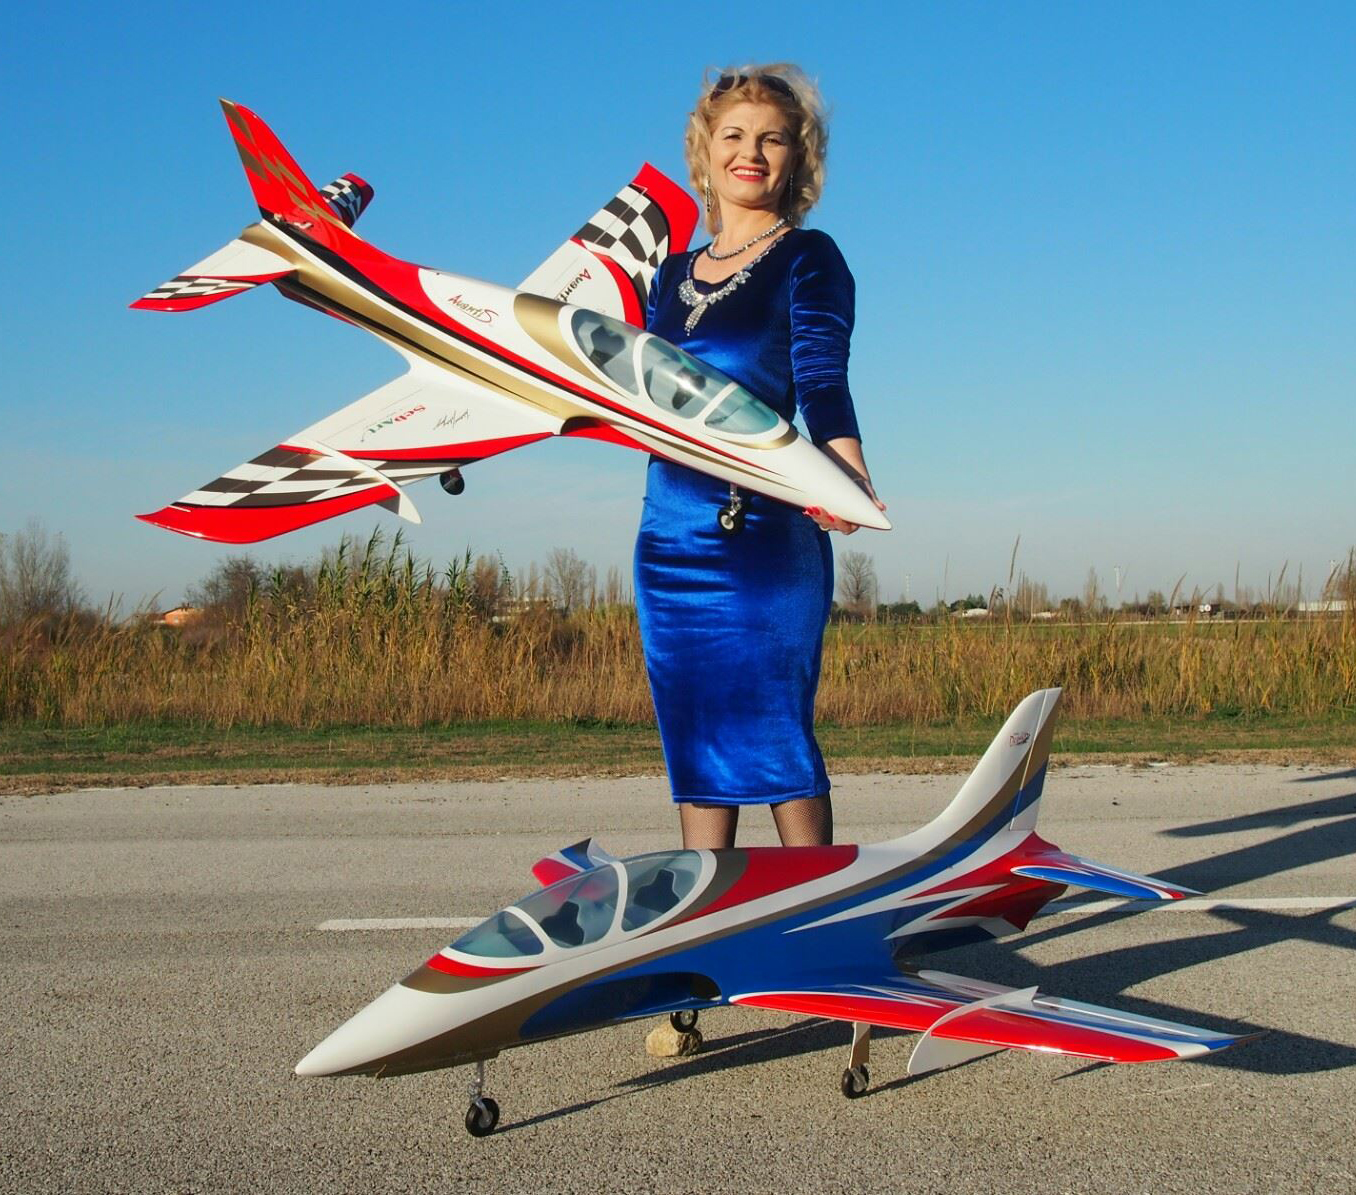 Click image for larger version  Name:SebArt Mini Avanti S 90mm EDF or P20 Turbine Jet White_Red Style and White_Blue CROPPED.jpg Views:710 Size:968.1 KB ID:2095966